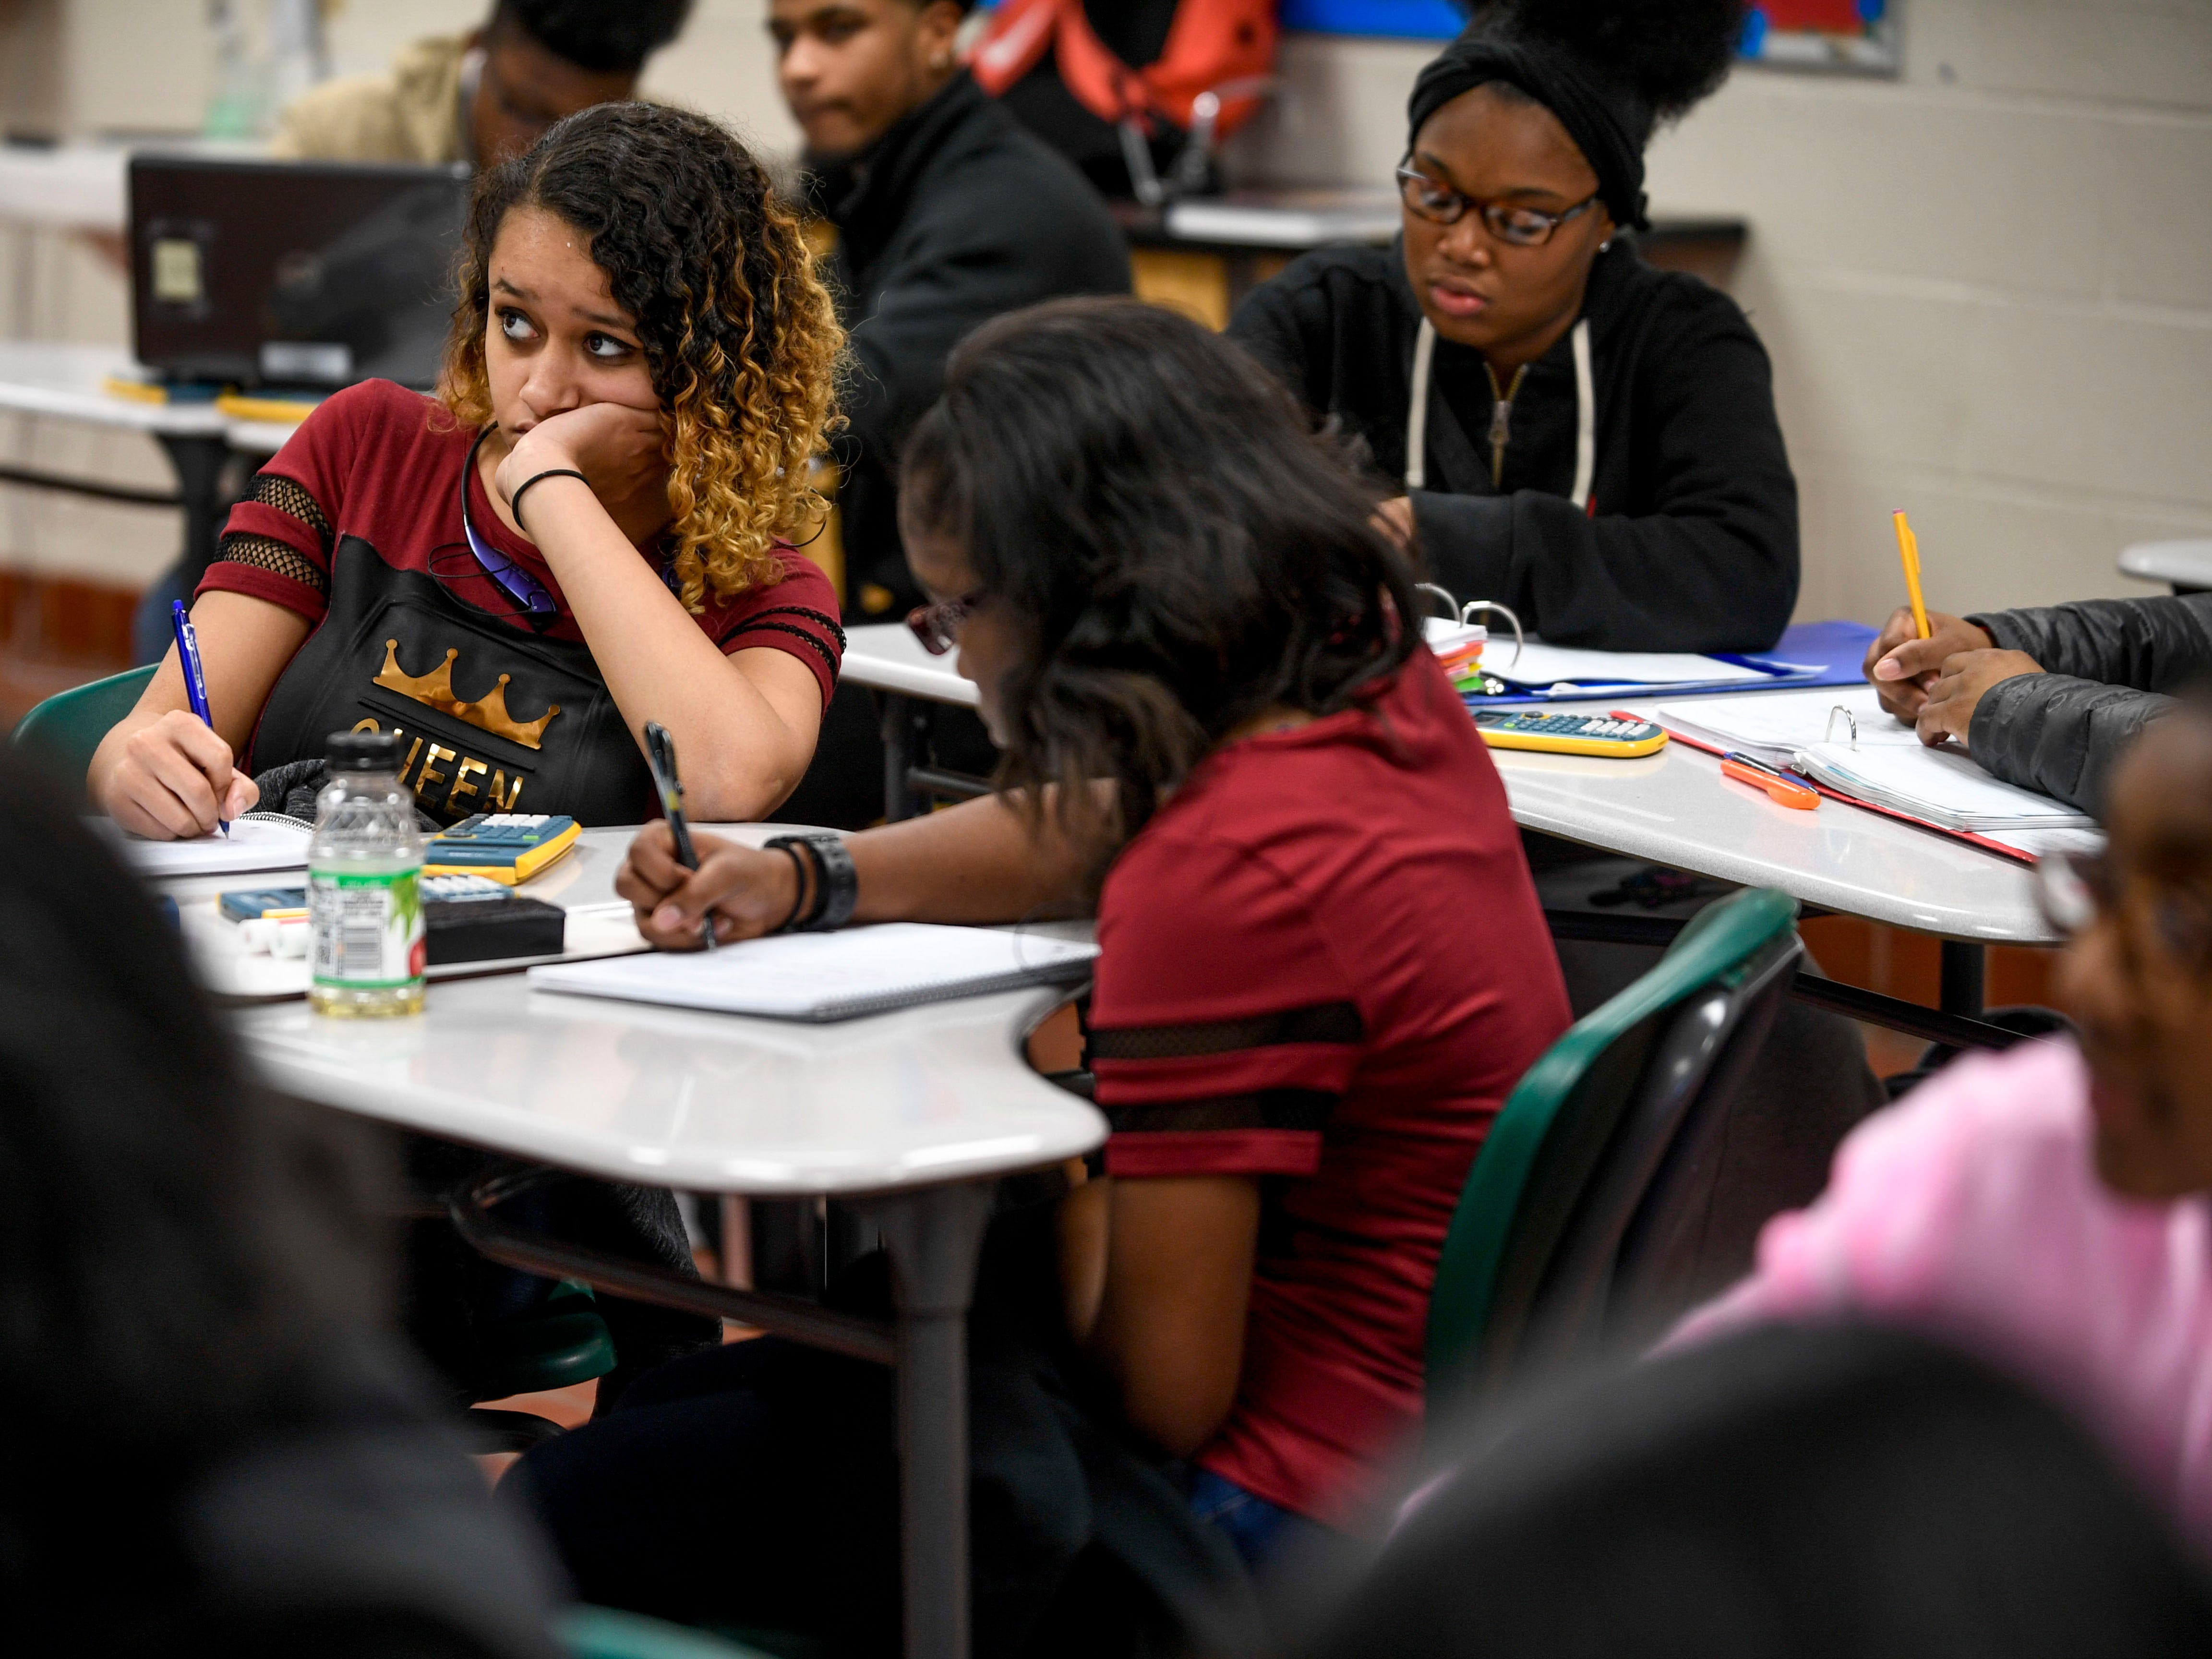 Maya Snyder, 16, jots down notes while listening to her teacher during a science class at Jackson Central-Merry in Jackson, Tenn., on Tuesday, Jan. 29, 2019.